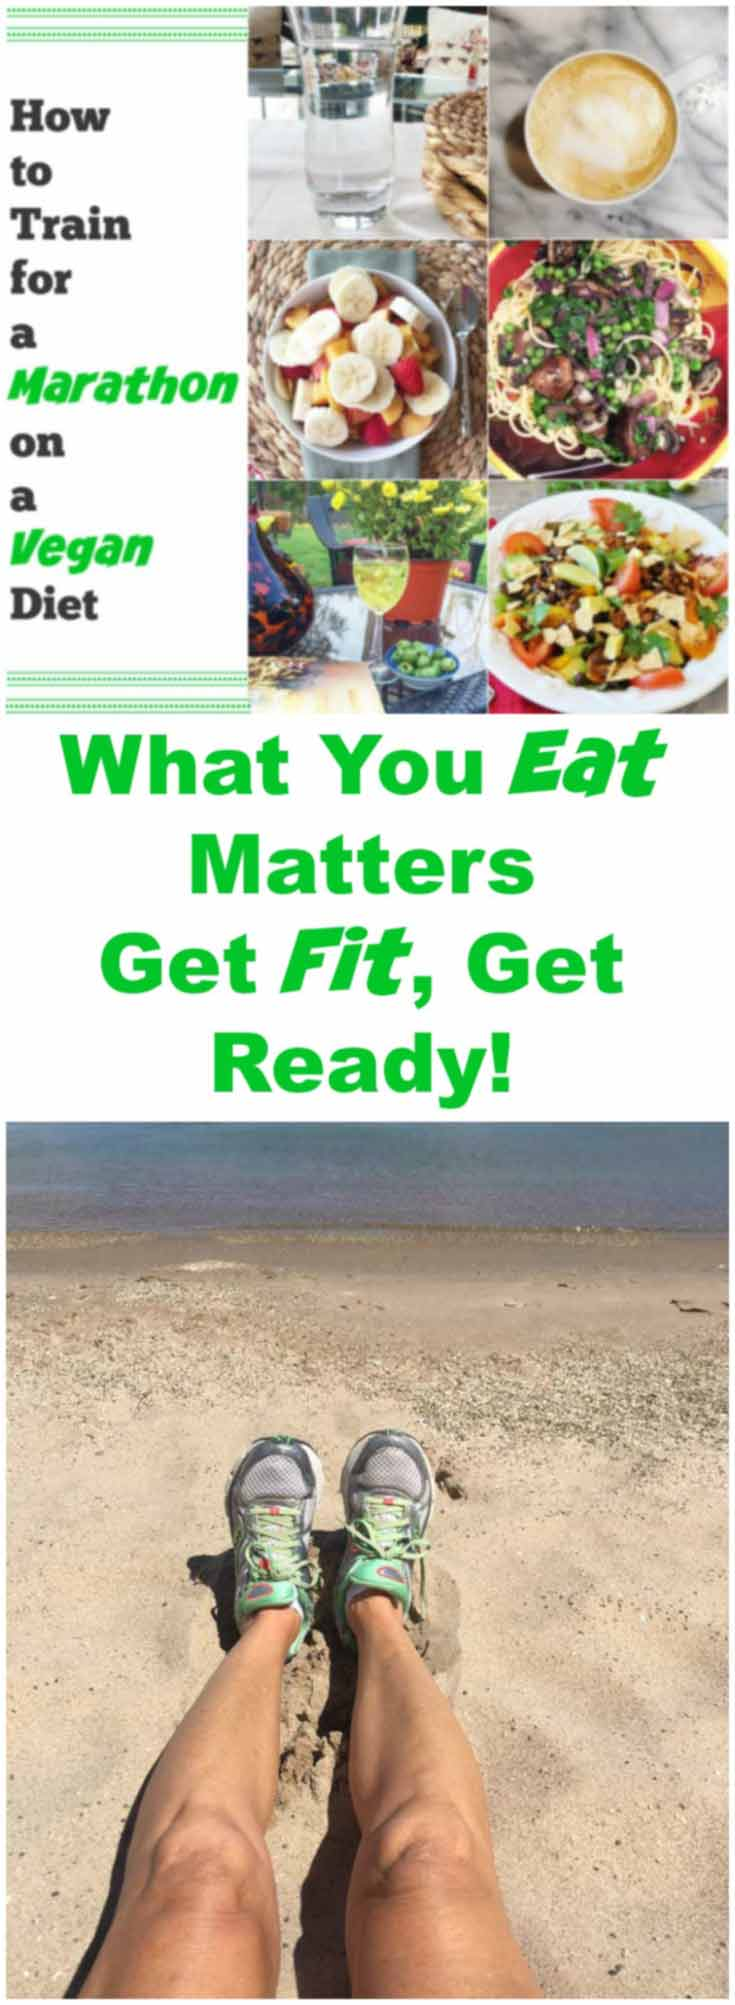 How to Train for a Marathon on a Vegan Diet! A plant-based diet can give you more than enough protein and nutrition, you just have to eat the right things. Take a look and see how I'm doing it. www.veganosity.com